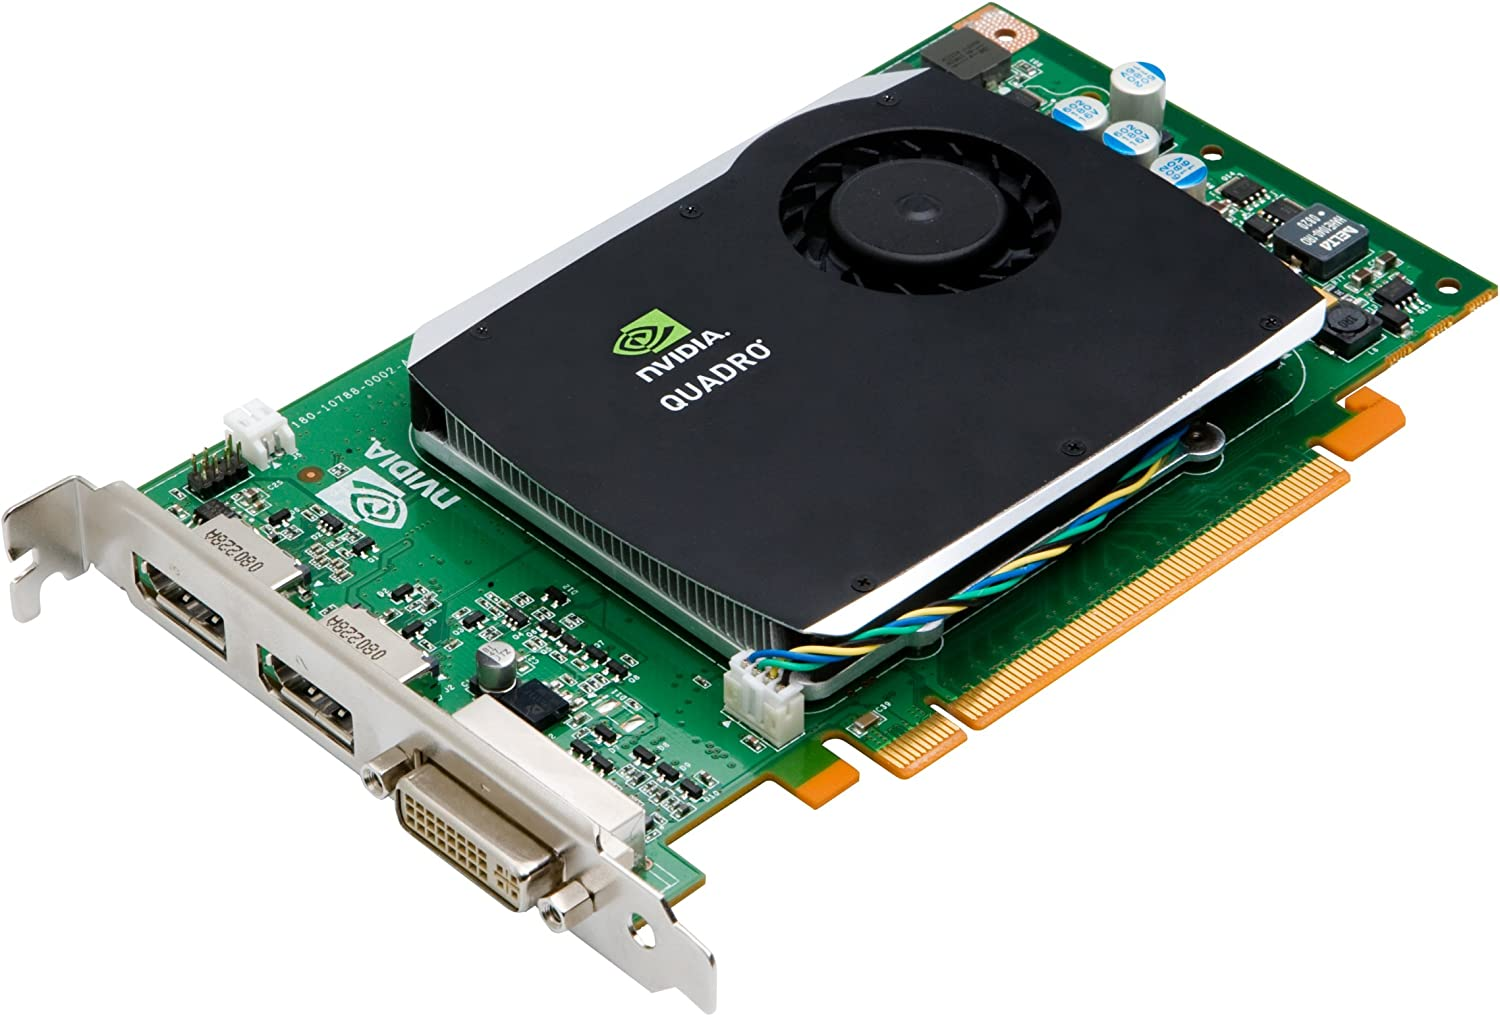 NVIDIA Quadro FX 580 by PNY 512MB GDDR3 PCI Express Gen 2 x16 DVI-I DL and Dual DisplayPort OpenGL, DirectX, CUDA and OpenCL Profesional Graphics ...